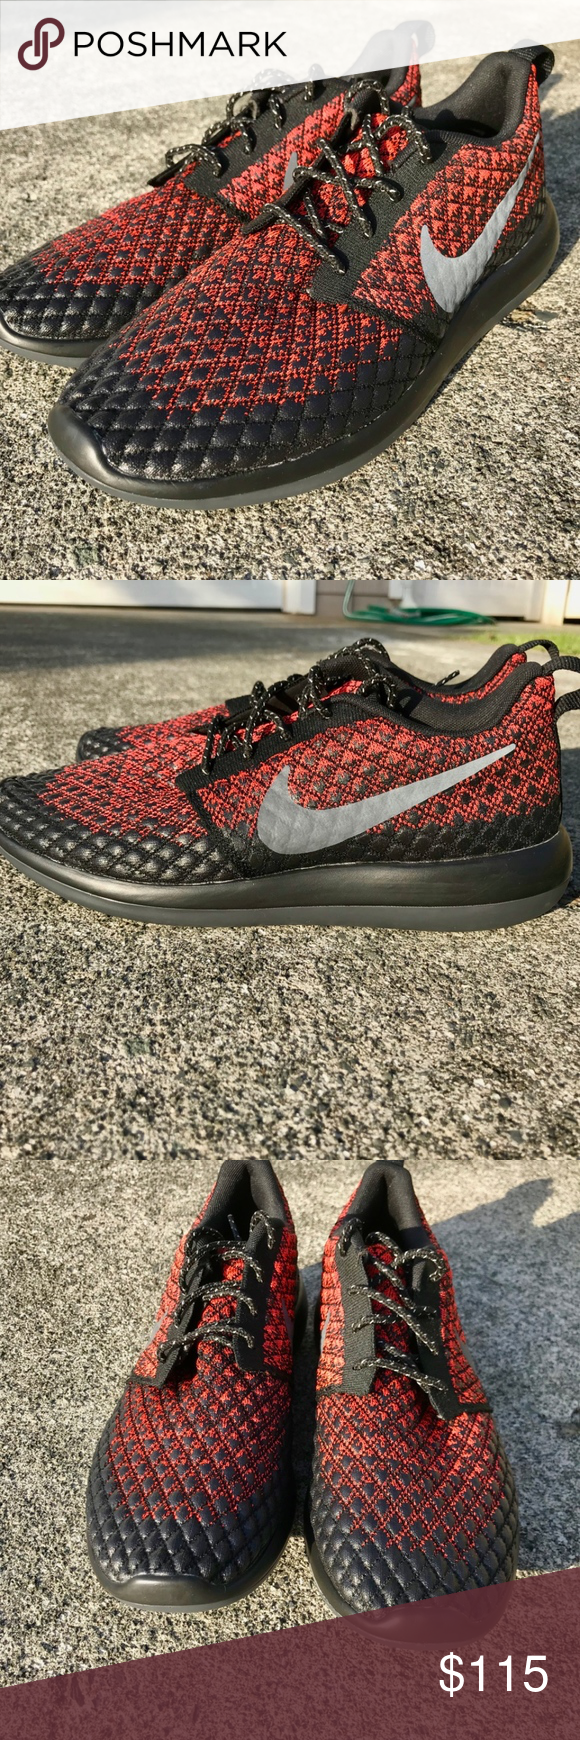 Nike Roshe Two Flyknit 365 Lifestyle Shoe The Popular Nike Roshe Two Stylized In Crimson And Black Style Code 859535 Nike Roshe Two Black Nike Shoes Shoes